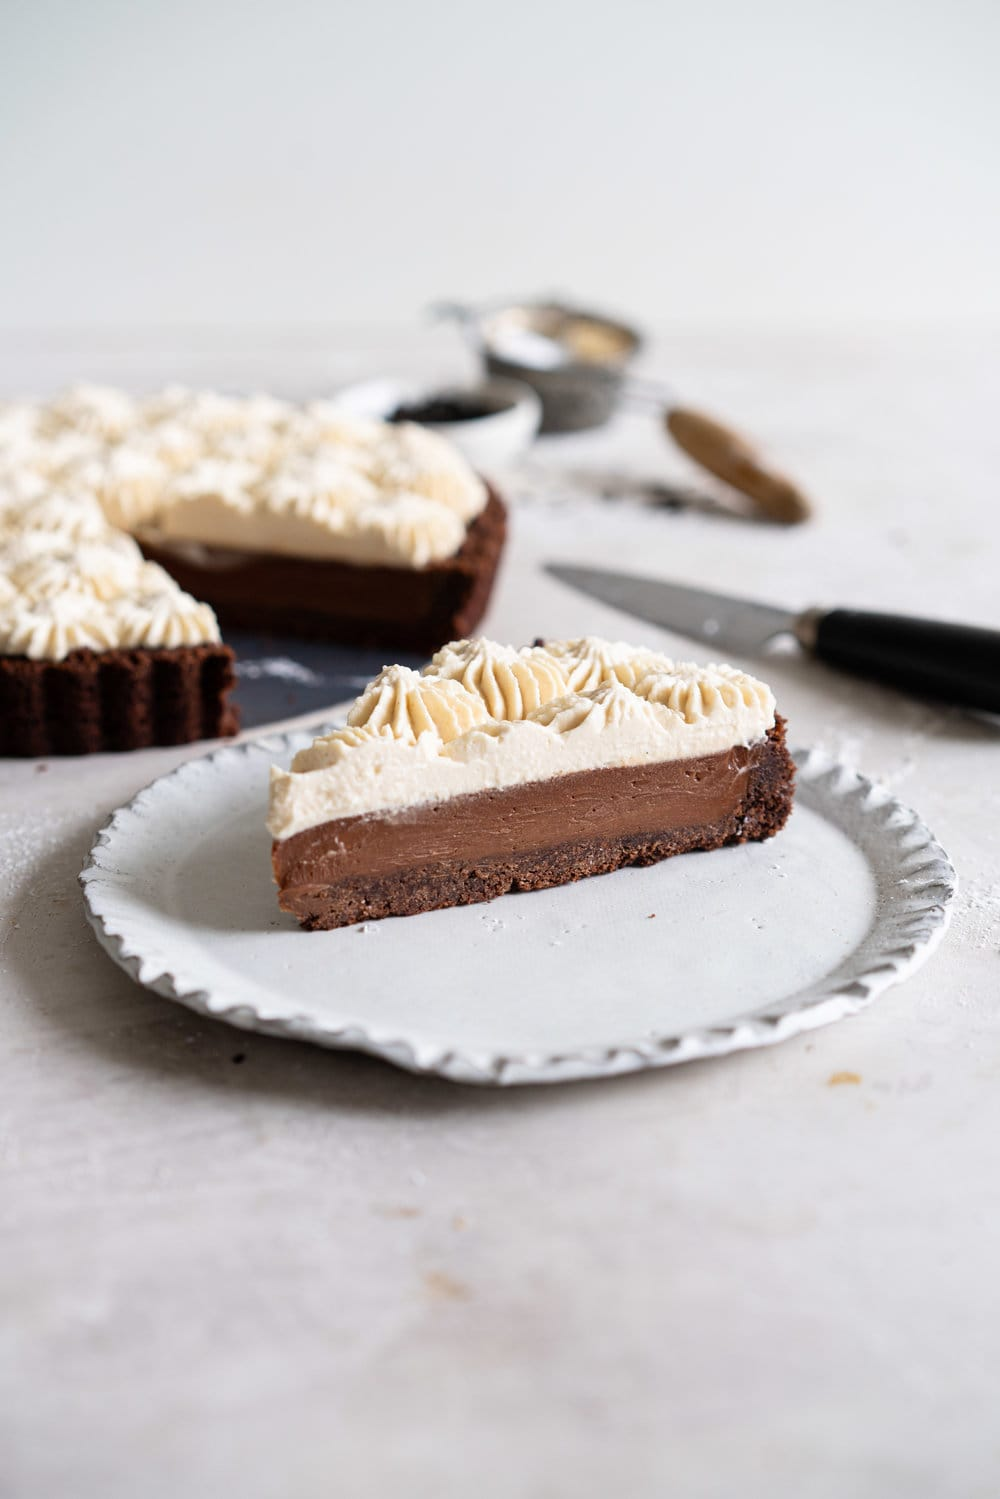 Dark Chocolate Salted Caramel Ganache Tart with Chocolate Graham Cracker Crust and Earl Grey Mascarpone Whipped Cream - this chocolate tart comes together quickly, and is the perfect easy dessert that easily feeds a crowd. A crunch base is topped with a silky smooth chocolate salted caramel filling, and finished with an earl grey mascarpone whipped cream. #chocolatetart #saltedcaramel #earlgreywhippedcream